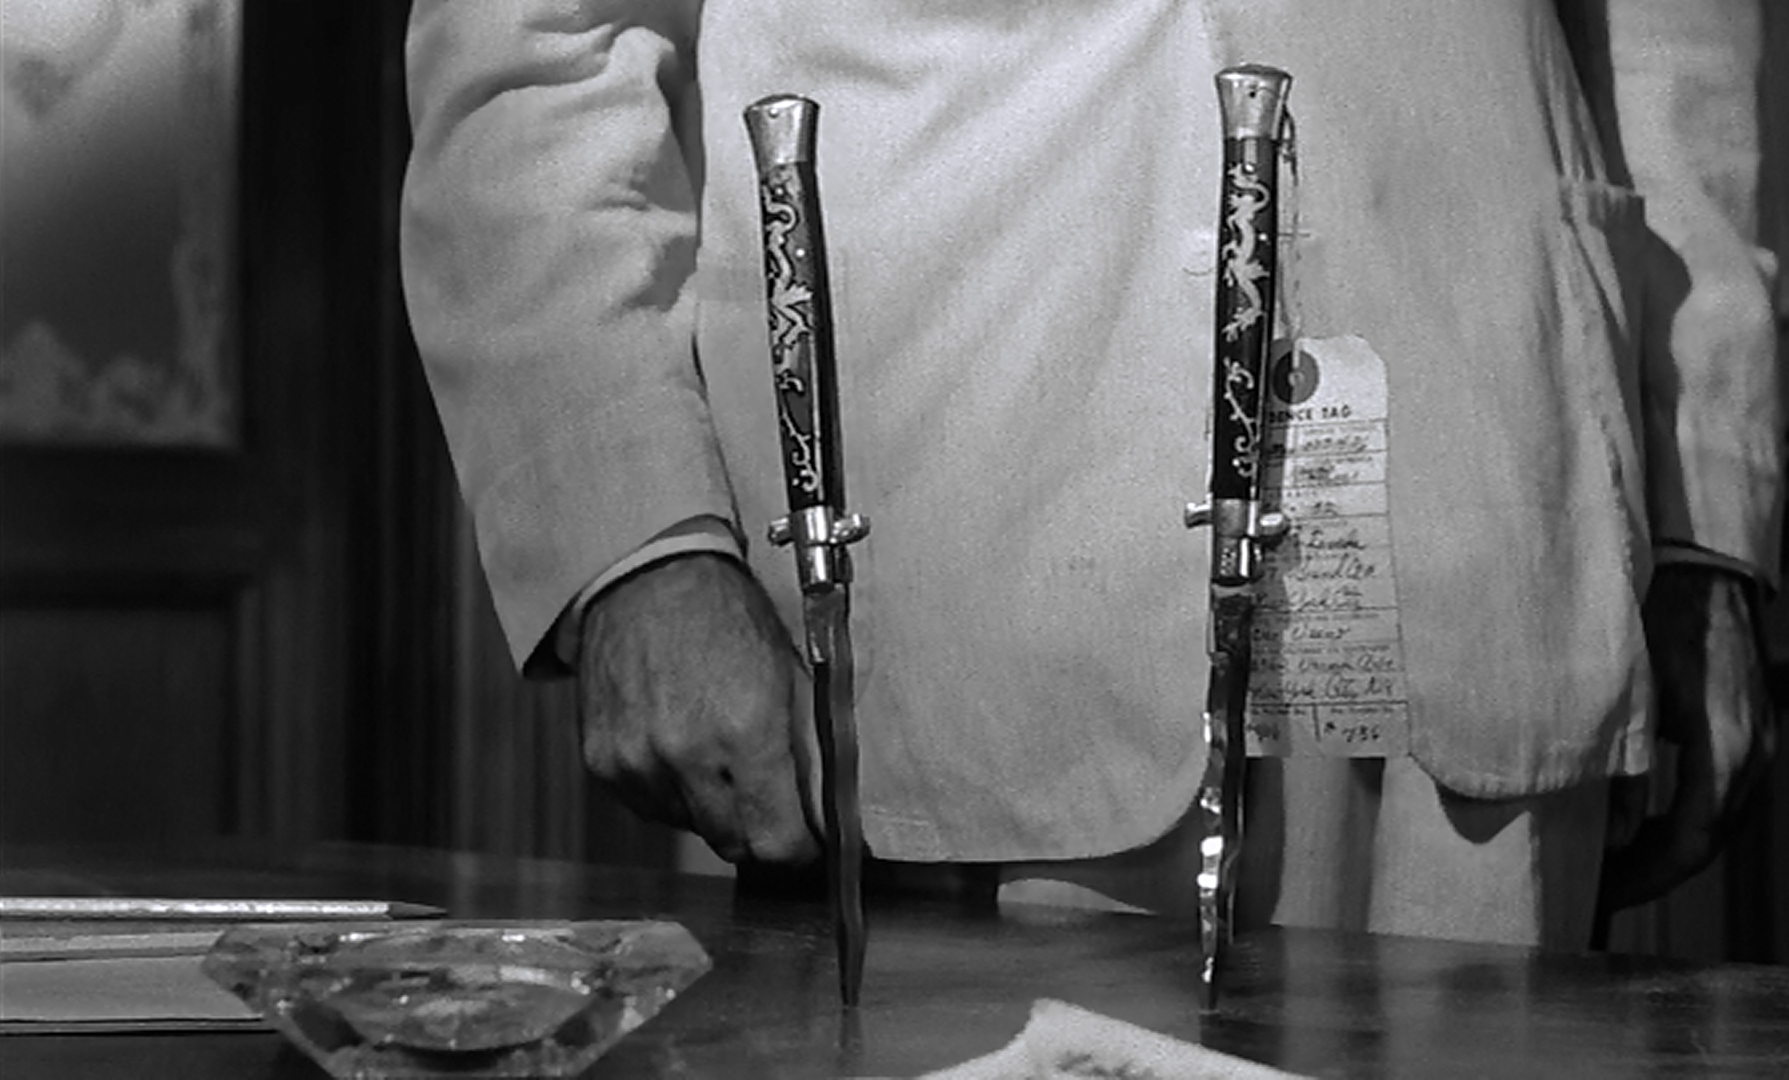 12 Angry Men switchblade knife | RPF Costume and Prop Maker